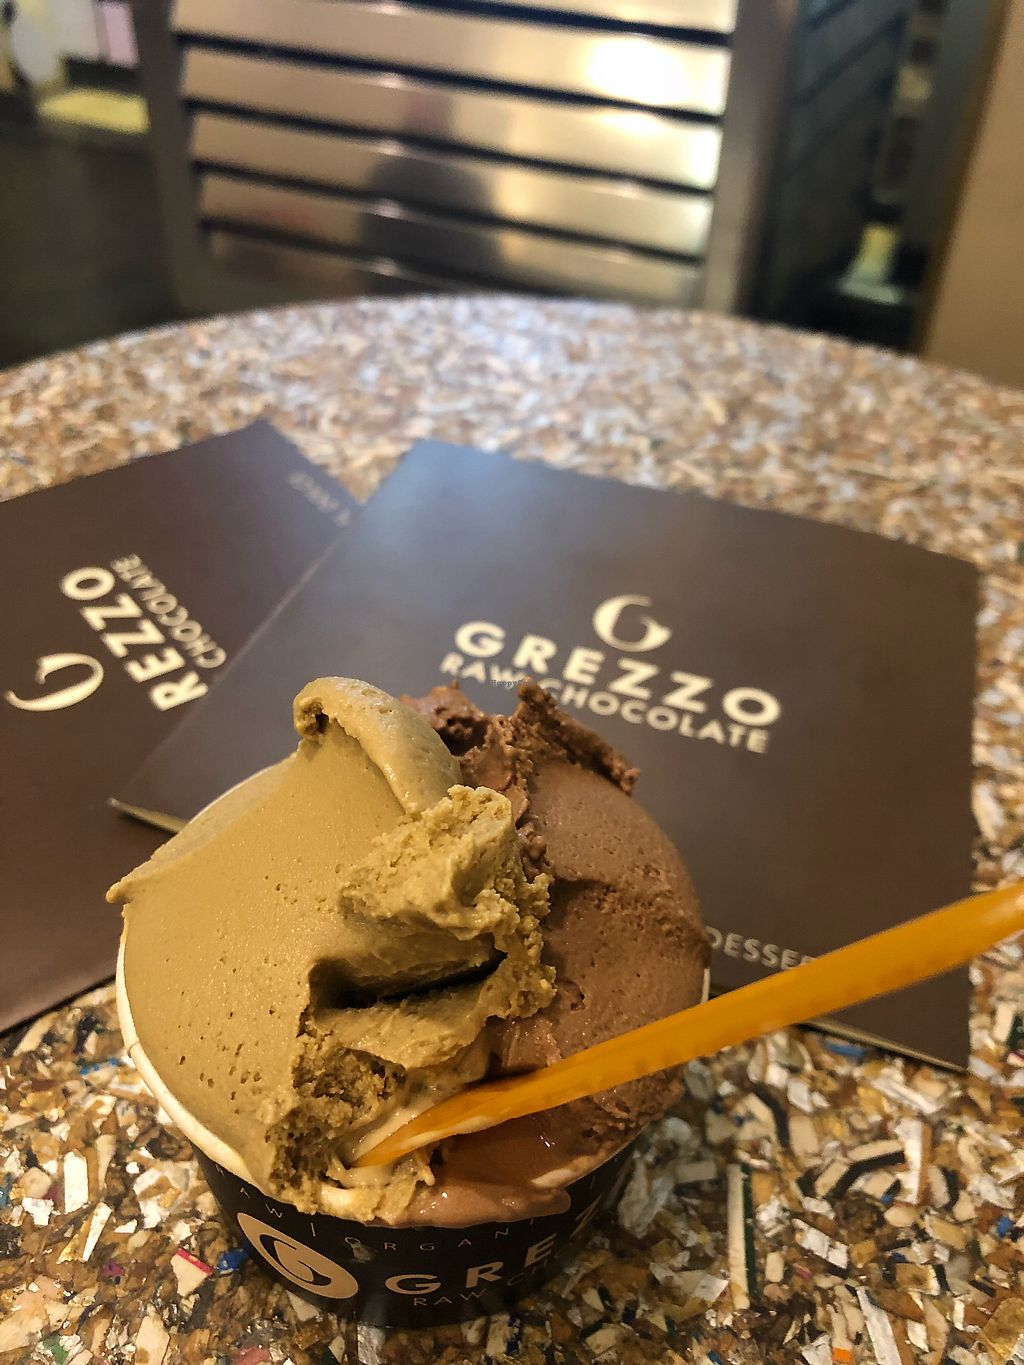 "Photo of Grezzo Raw Chocolate  by <a href=""/members/profile/_hael"">_hael</a> <br/>Pistachio & Chocolate Raw Gelato <br/> February 27, 2018  - <a href='/contact/abuse/image/46755/364518'>Report</a>"